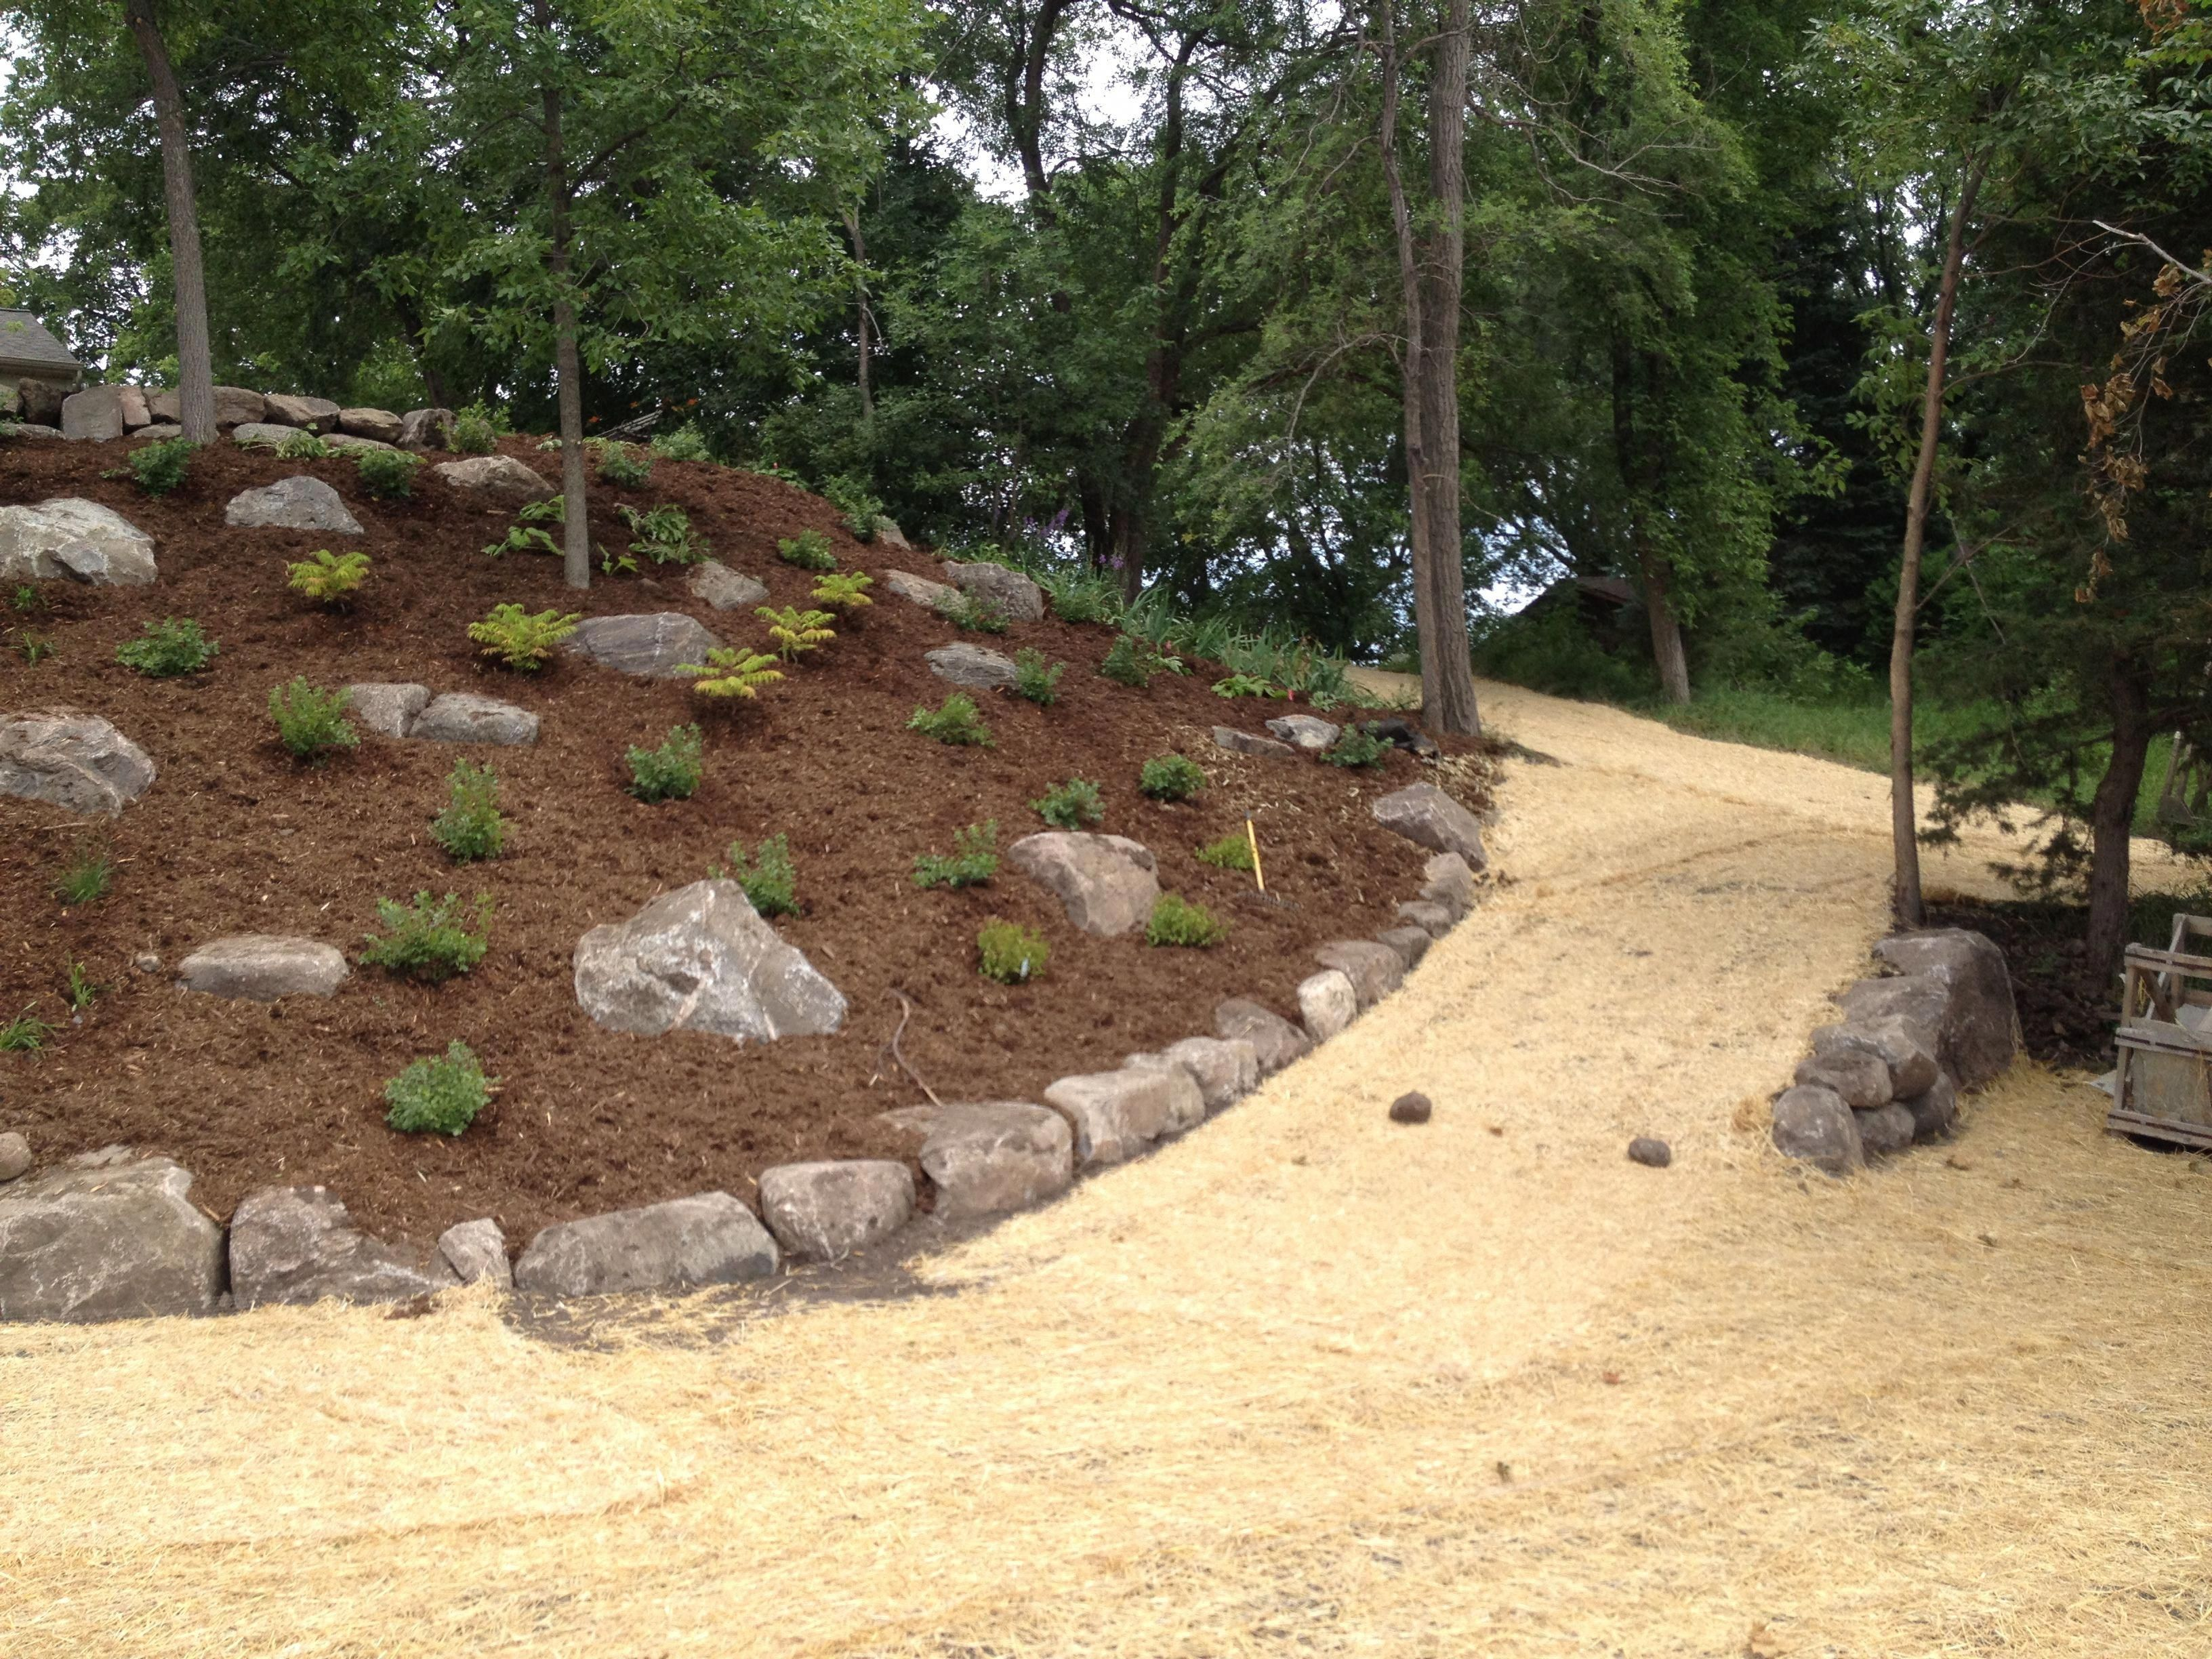 Landscaping Steep Hill Of A Steep Hill We Sucessfully Landscaped Contact Us Today To With Images Landscaping With Rocks Steep Hill Landscaping Landscaping With Boulders